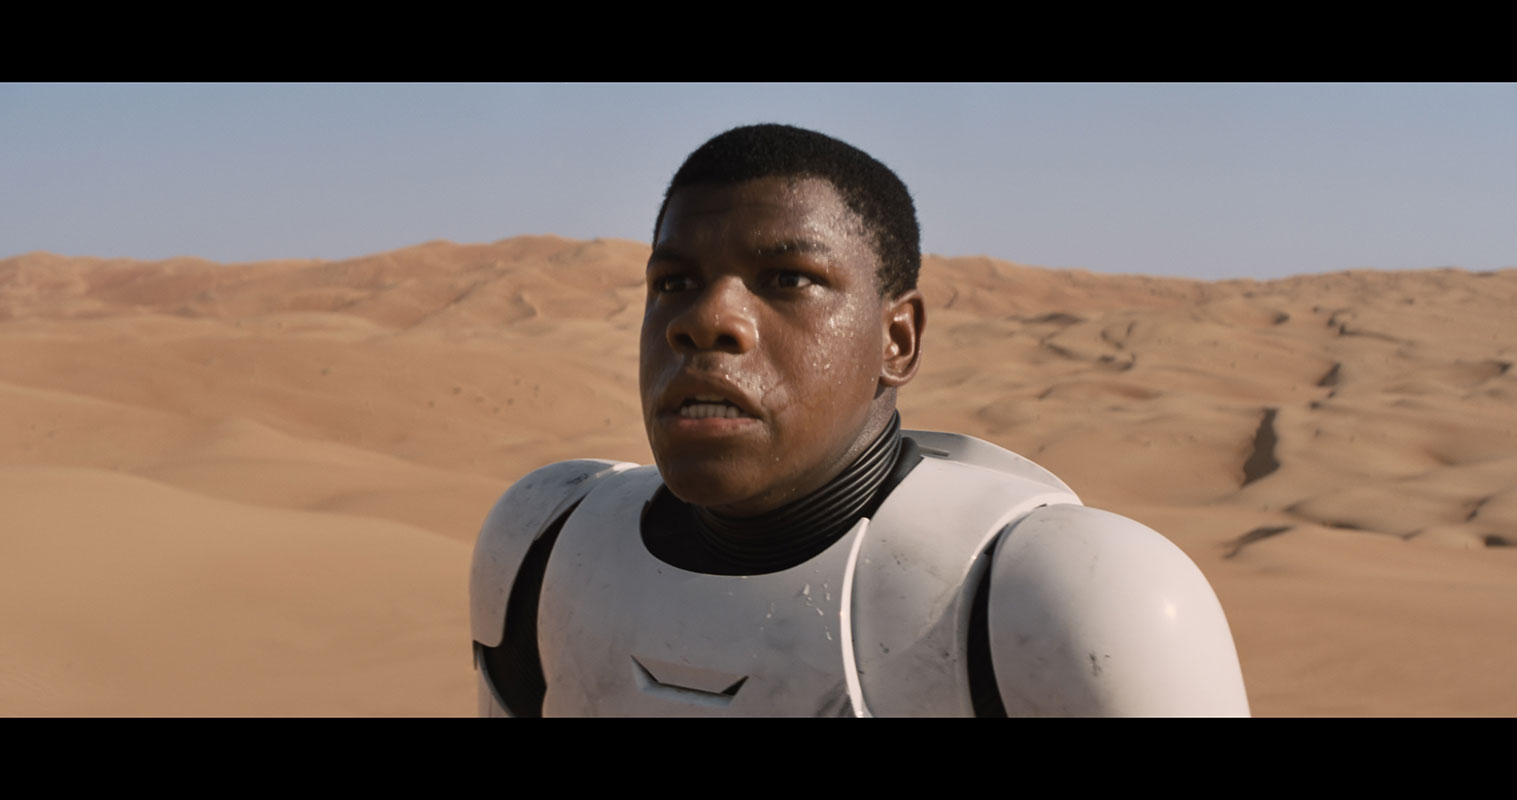 star-wars-episode-7-john-boyega.jpg